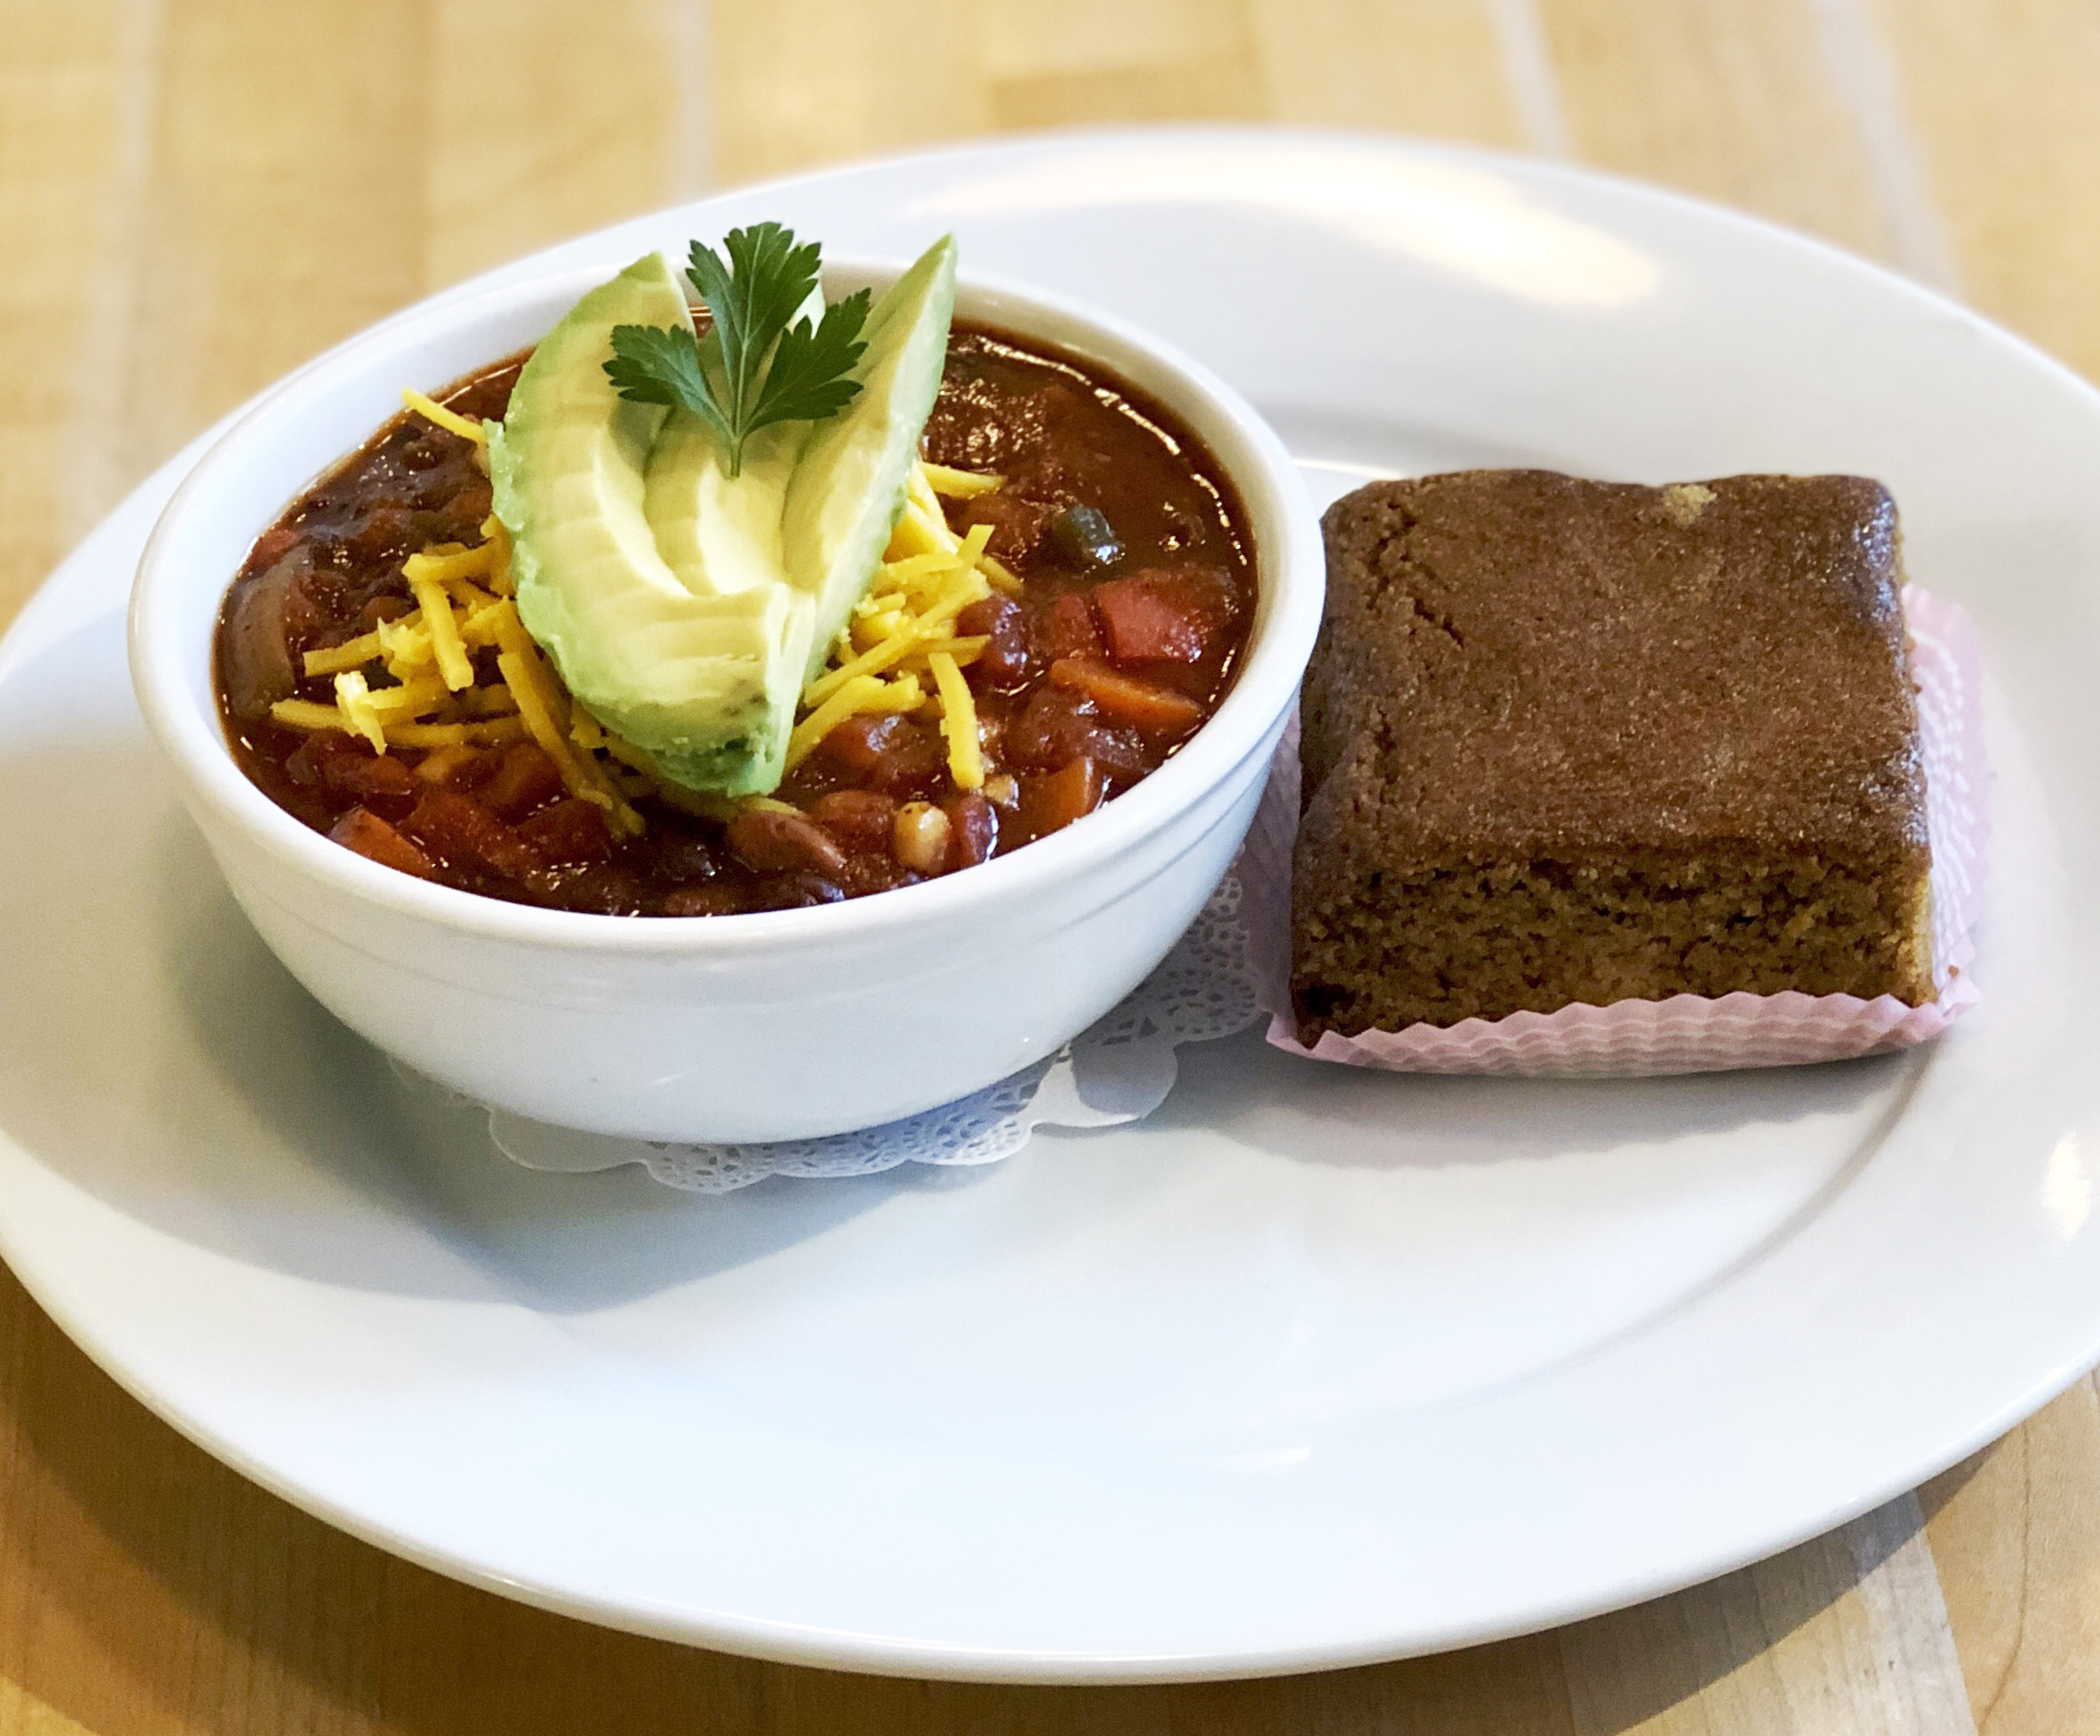 A white bowl of chili topped with slices of avocado sits next to a brown, brownie-like square of cornbead